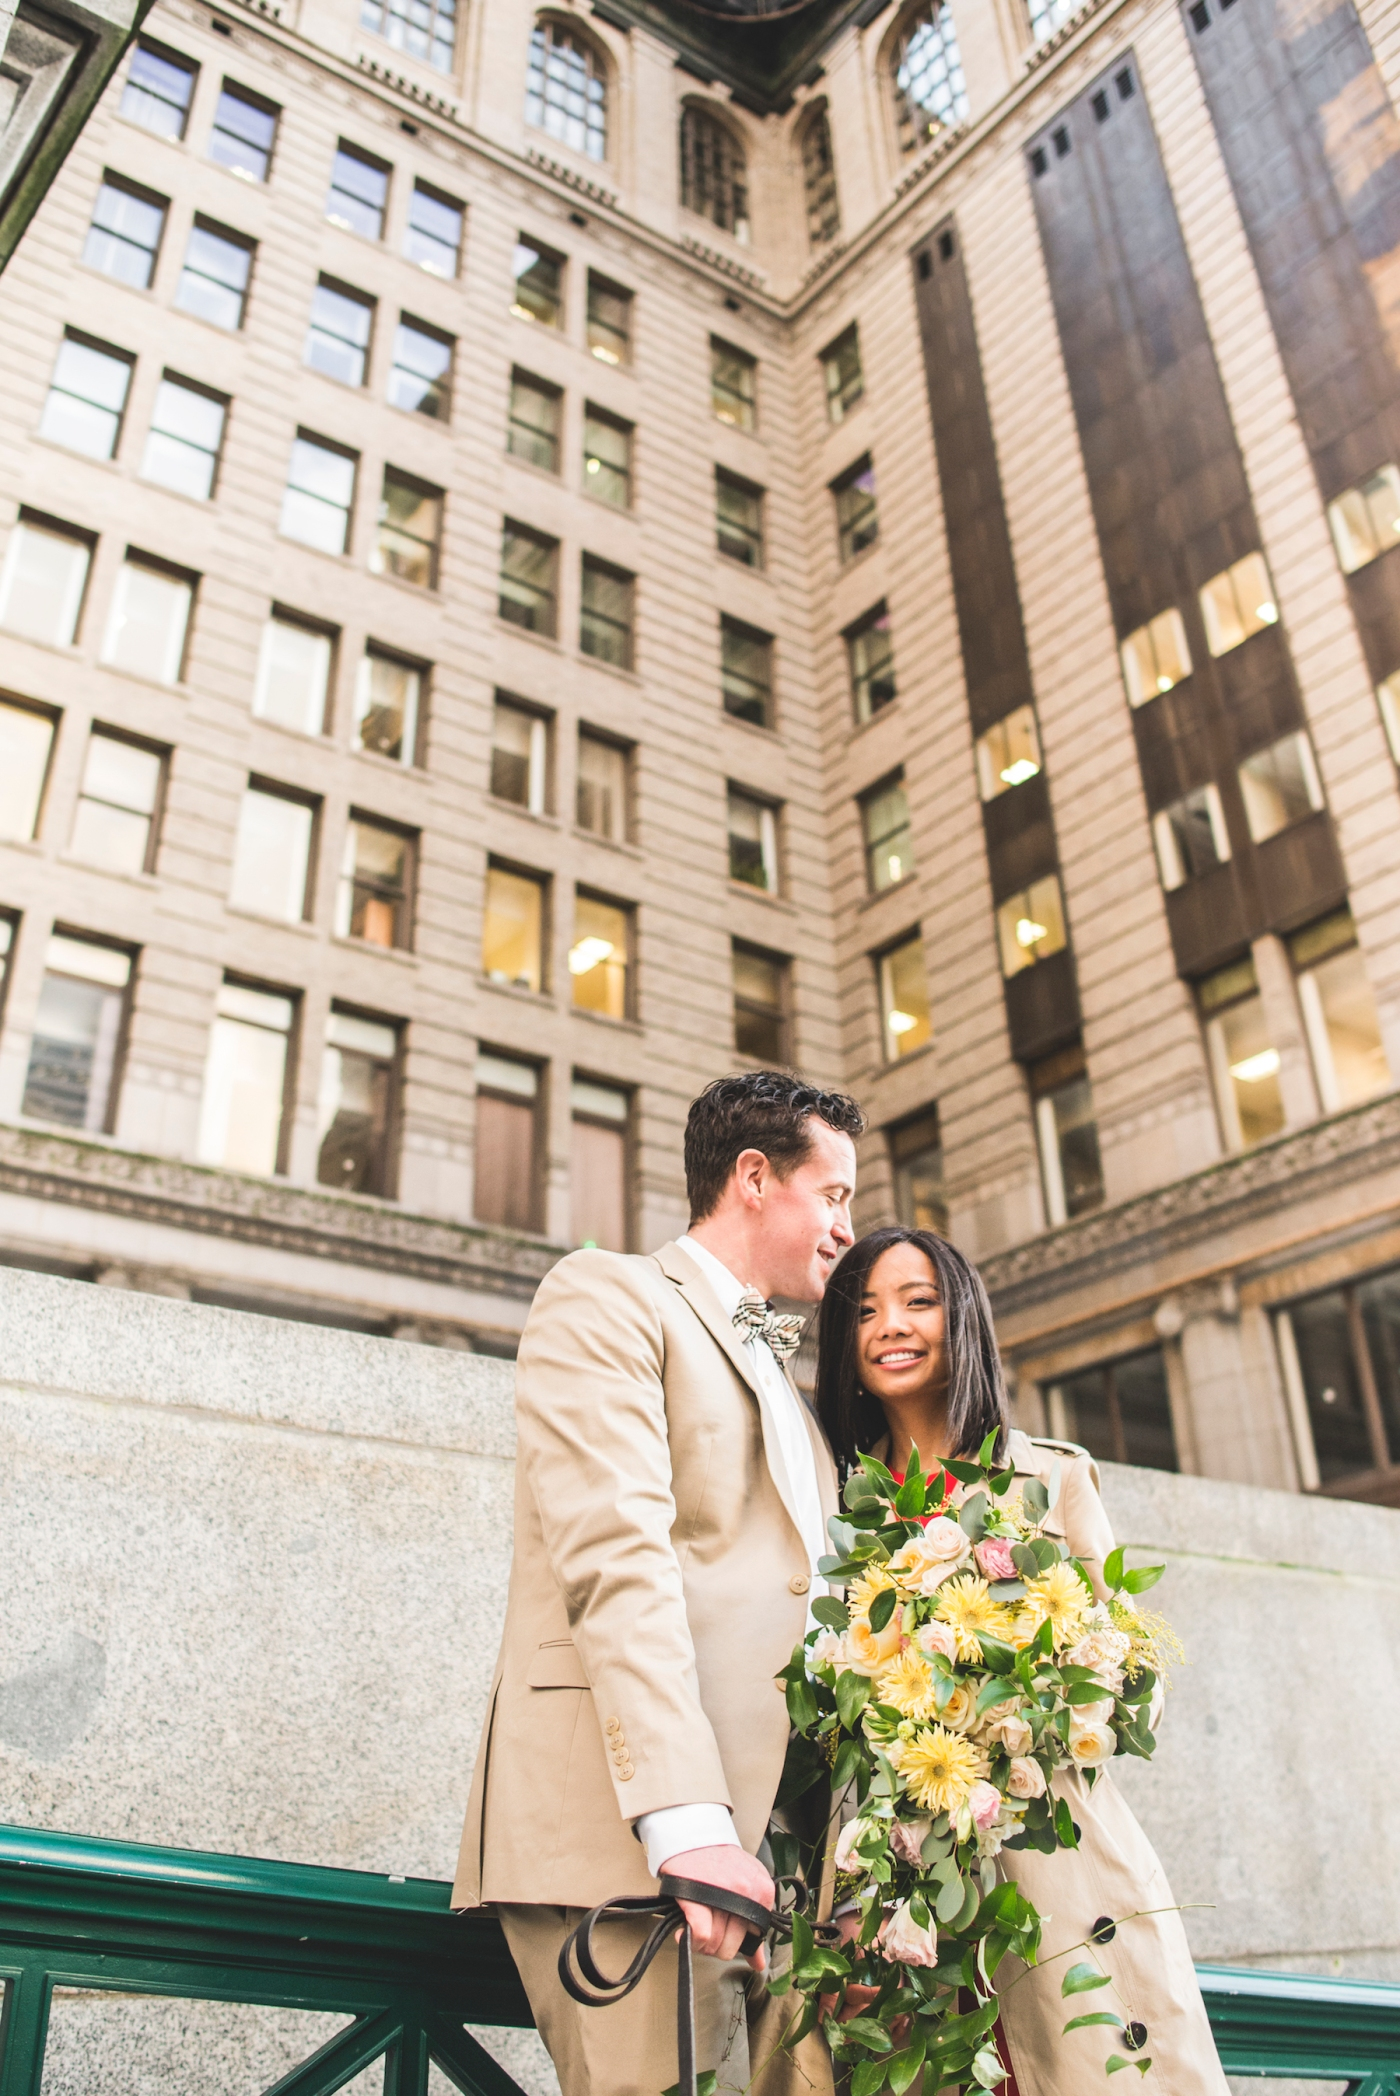 photography_by_jane_speleers_2017_seattle_court_house_wedding-dsc_9278